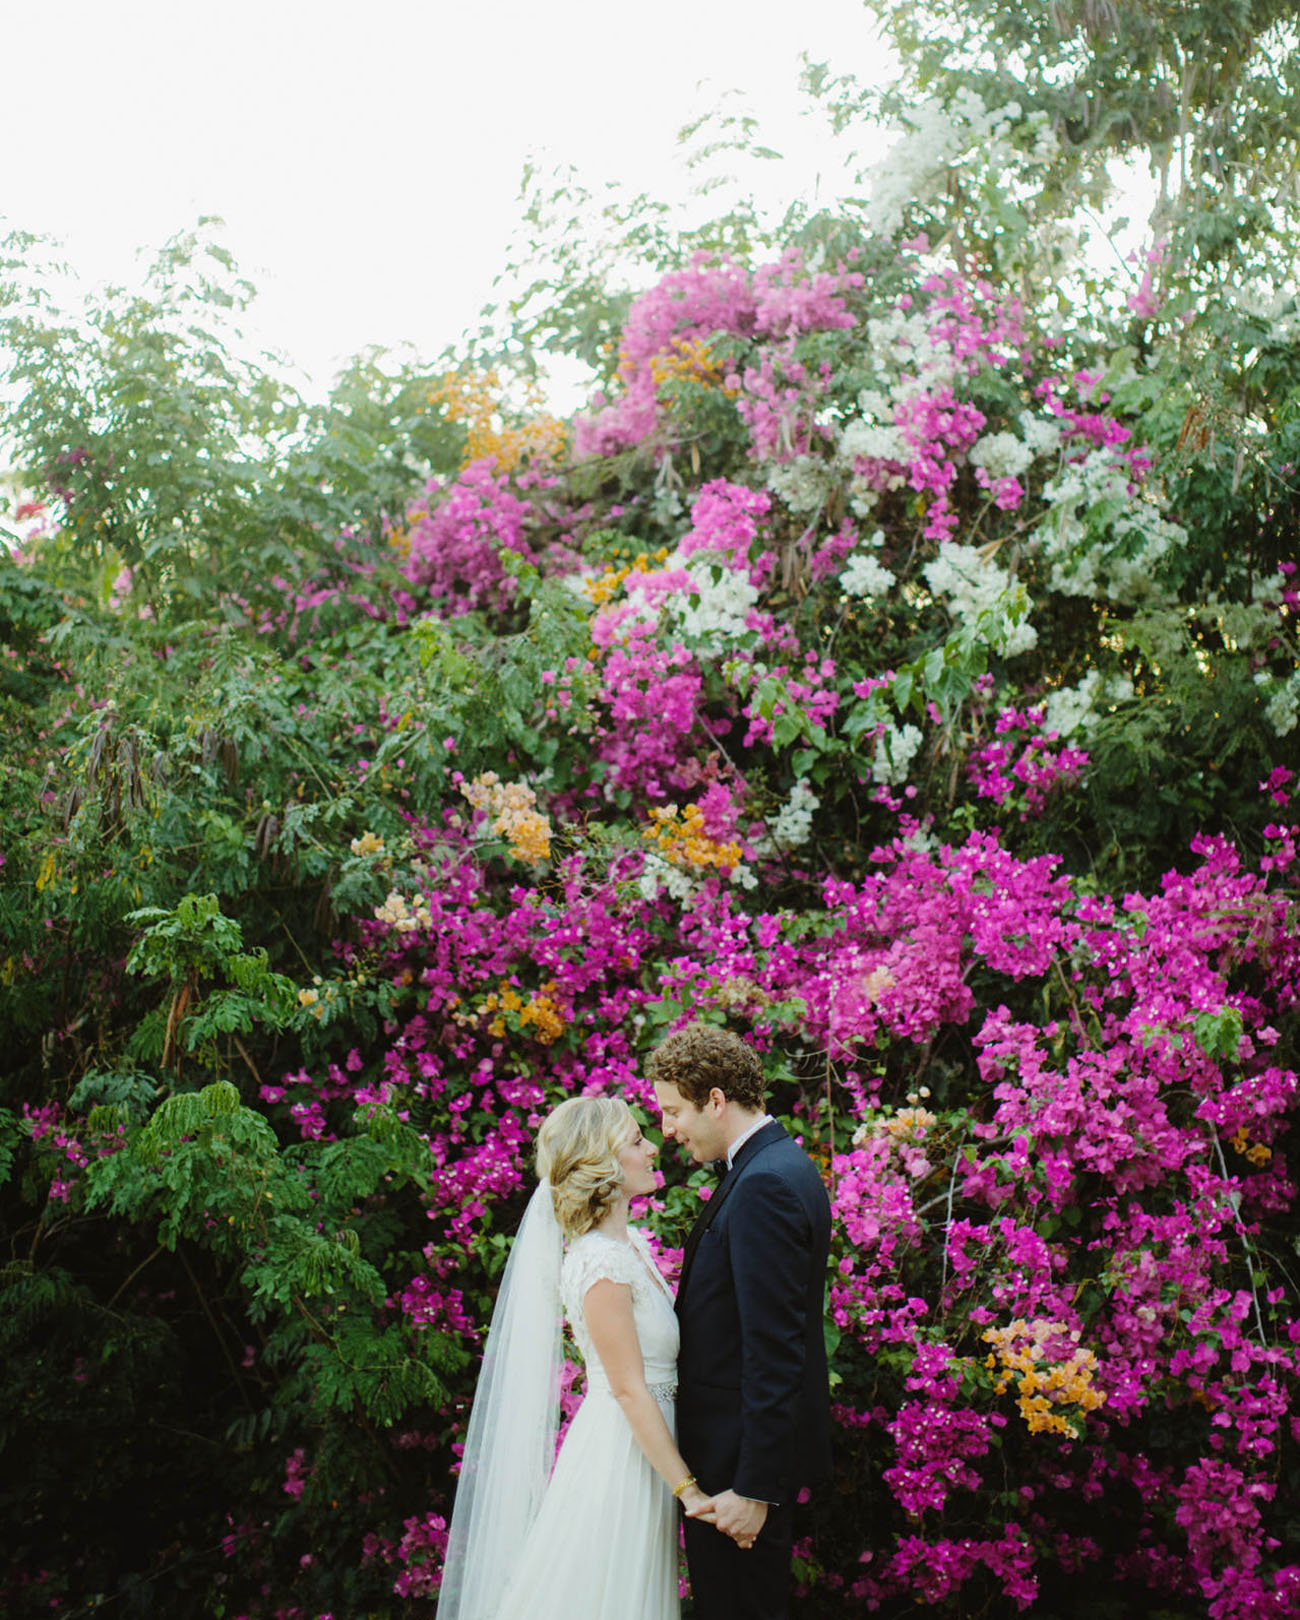 Photography Courtship: How to Find Your Perfect Match